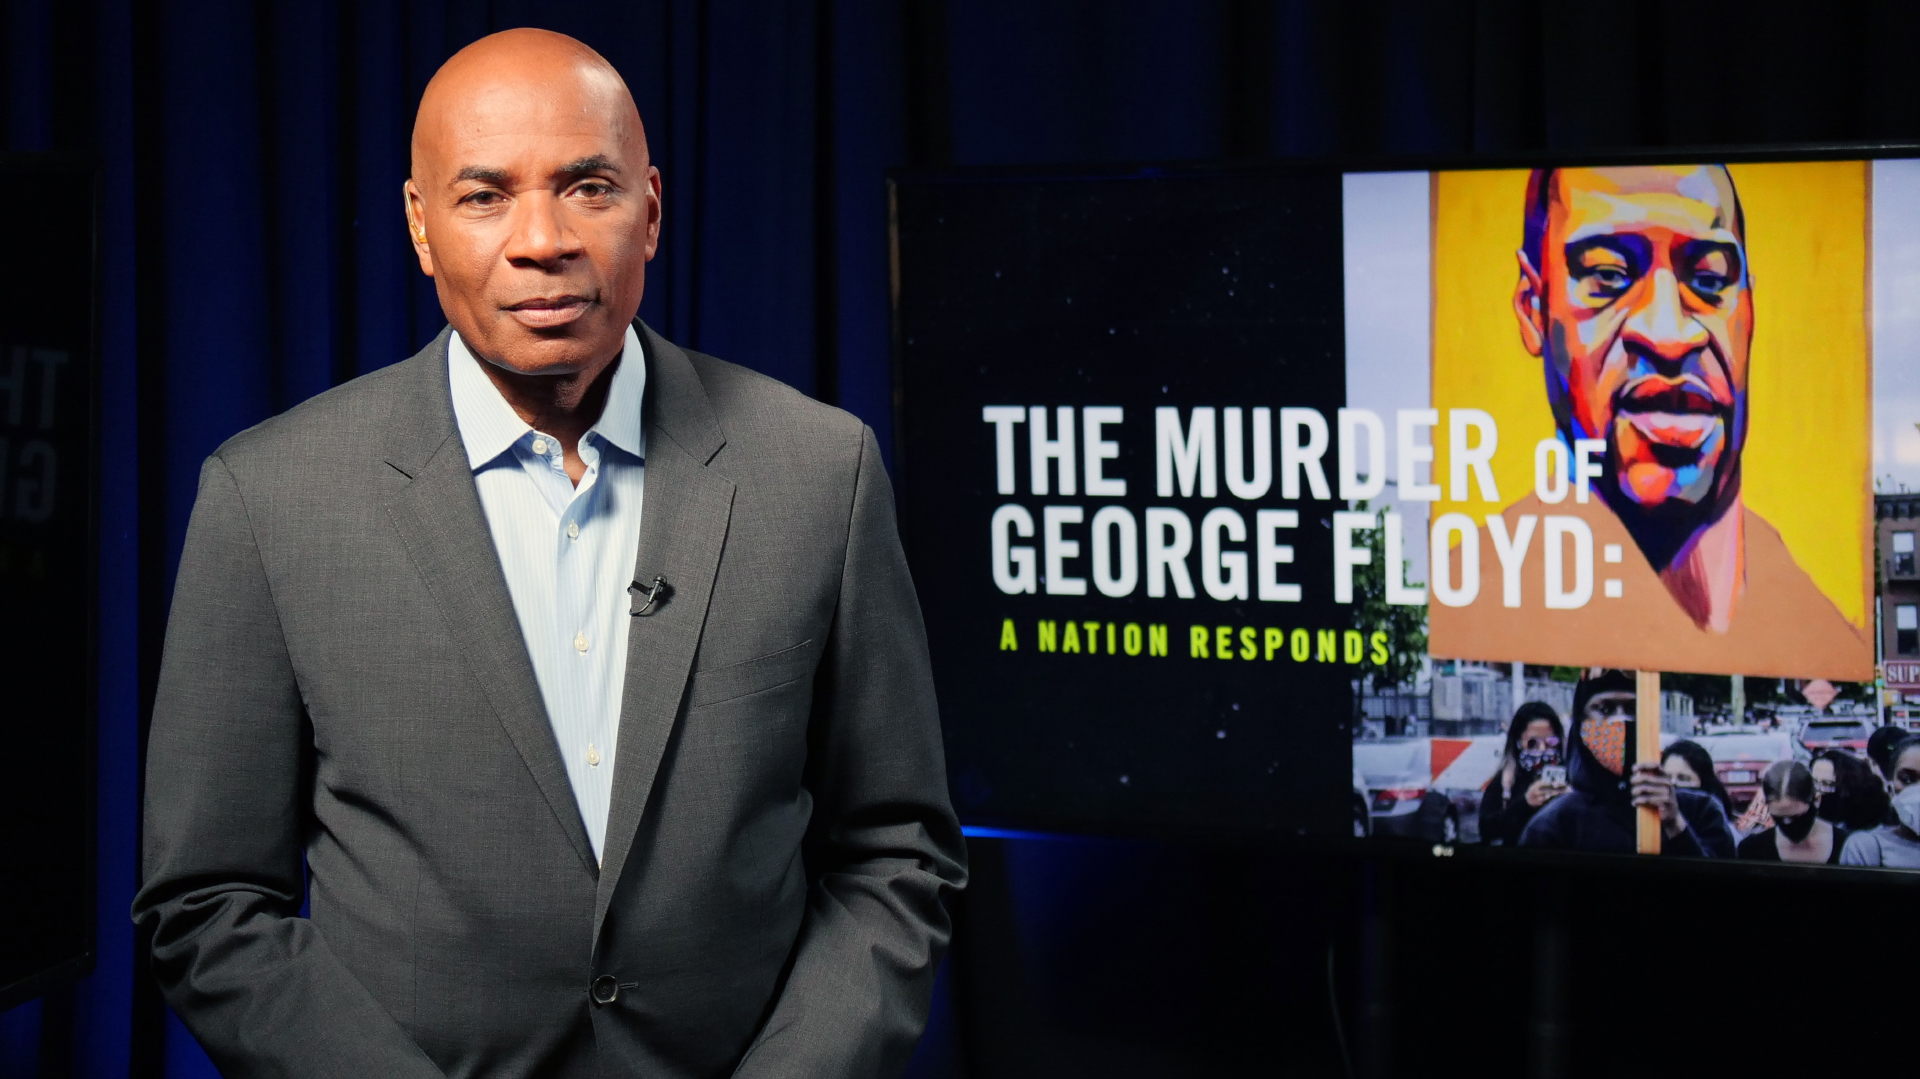 ID to air THE MURDER OF GEORGE FLOYD: A NATION RESPONDS